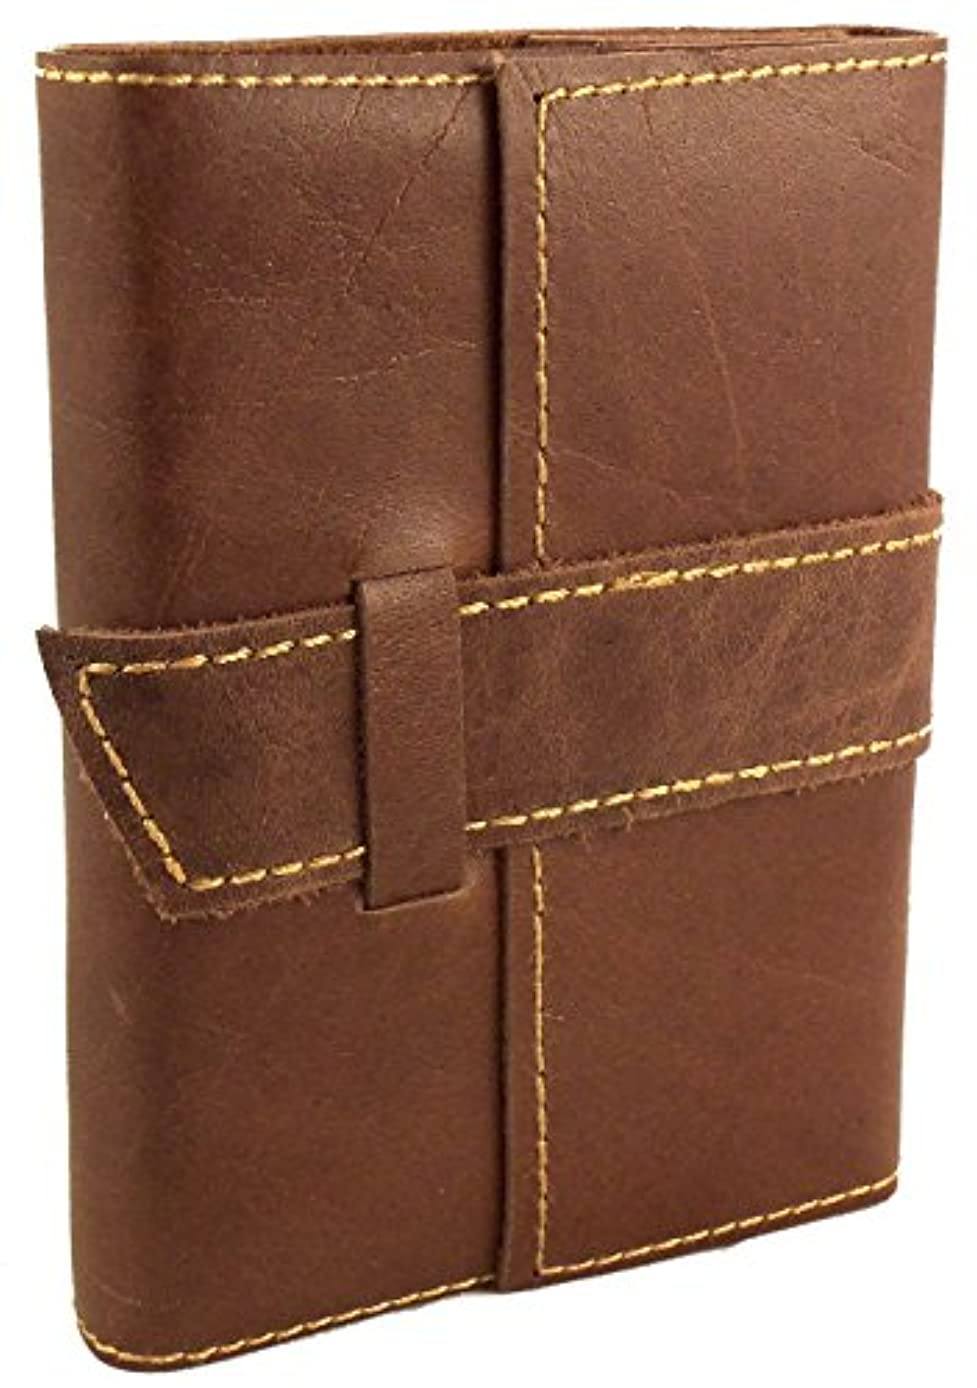 Rustic Ridge Distressed Leather Pocket Journal with Handmade Paper - Pocket Size Travel Journal (Saddle Brown)